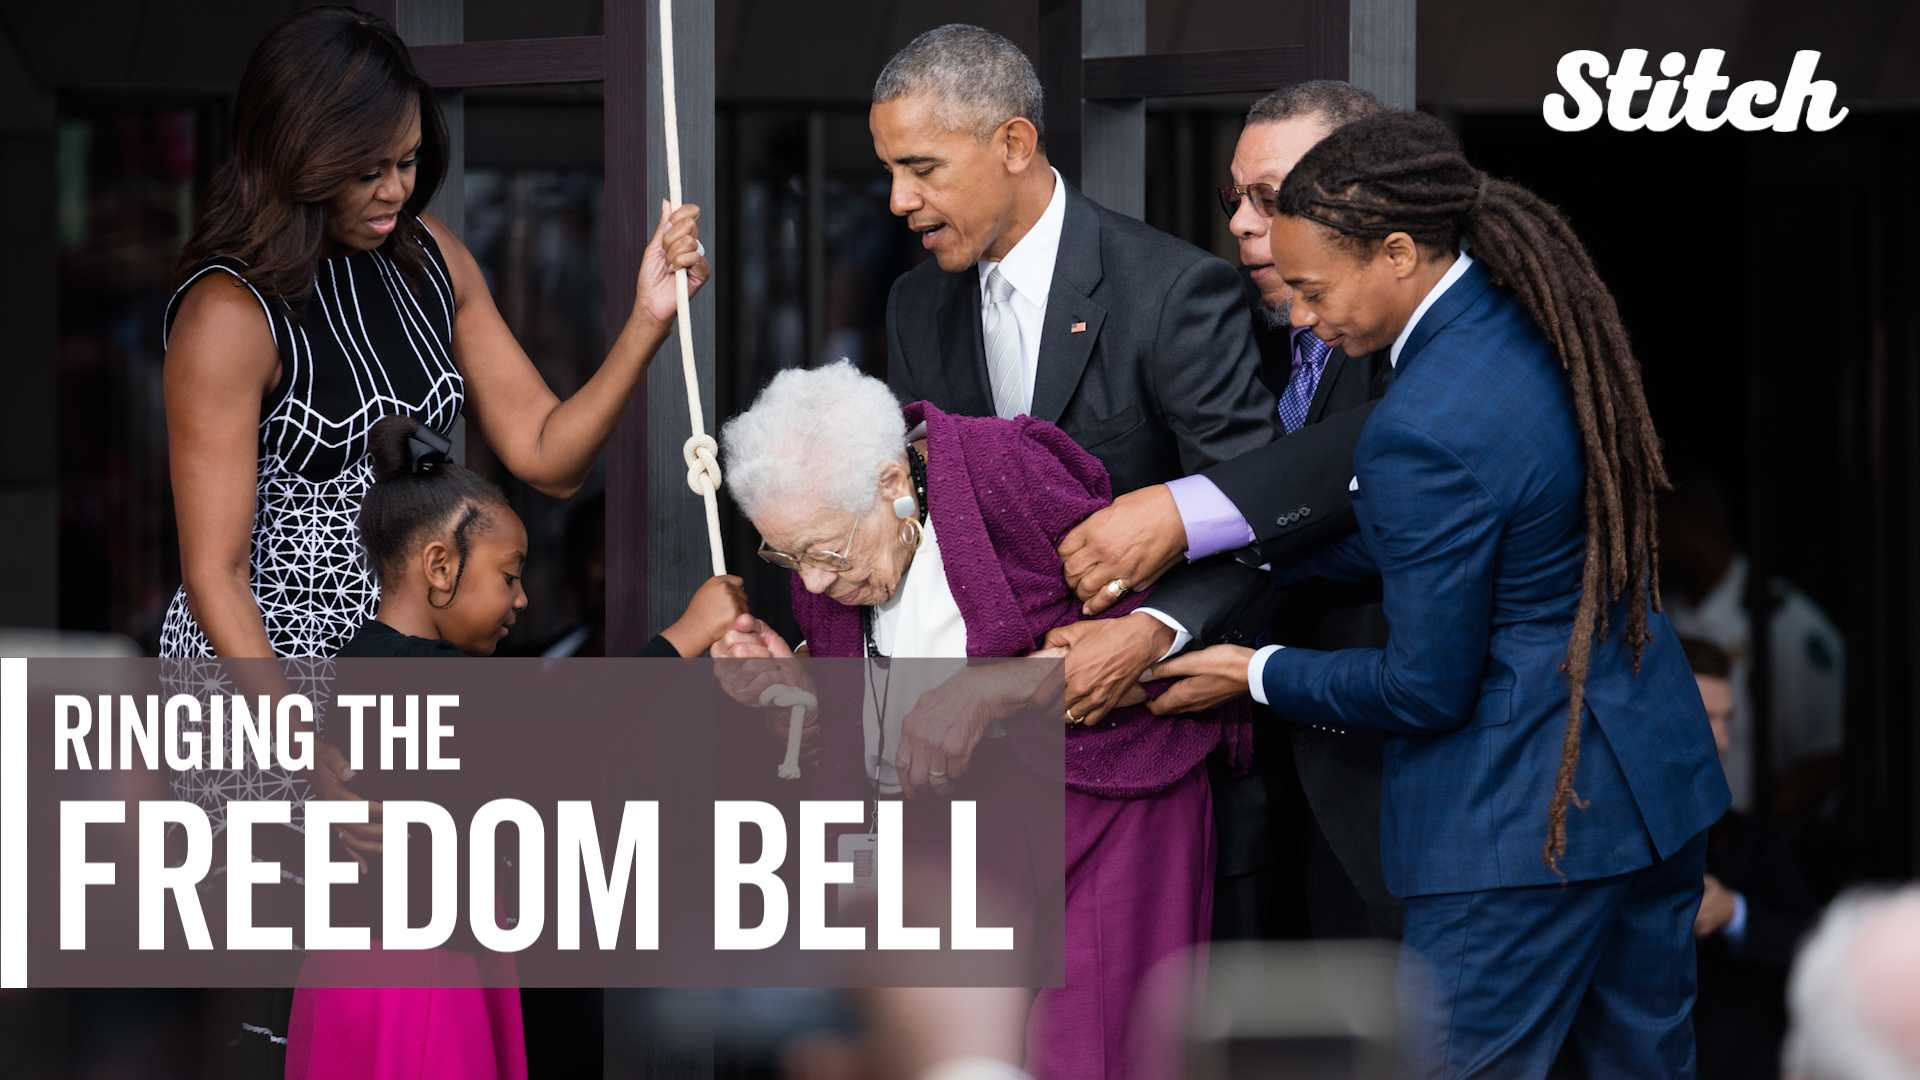 Honoring Ruth Odom Bonner, the daughter of a slave who rang the Freedom Bell with Obama